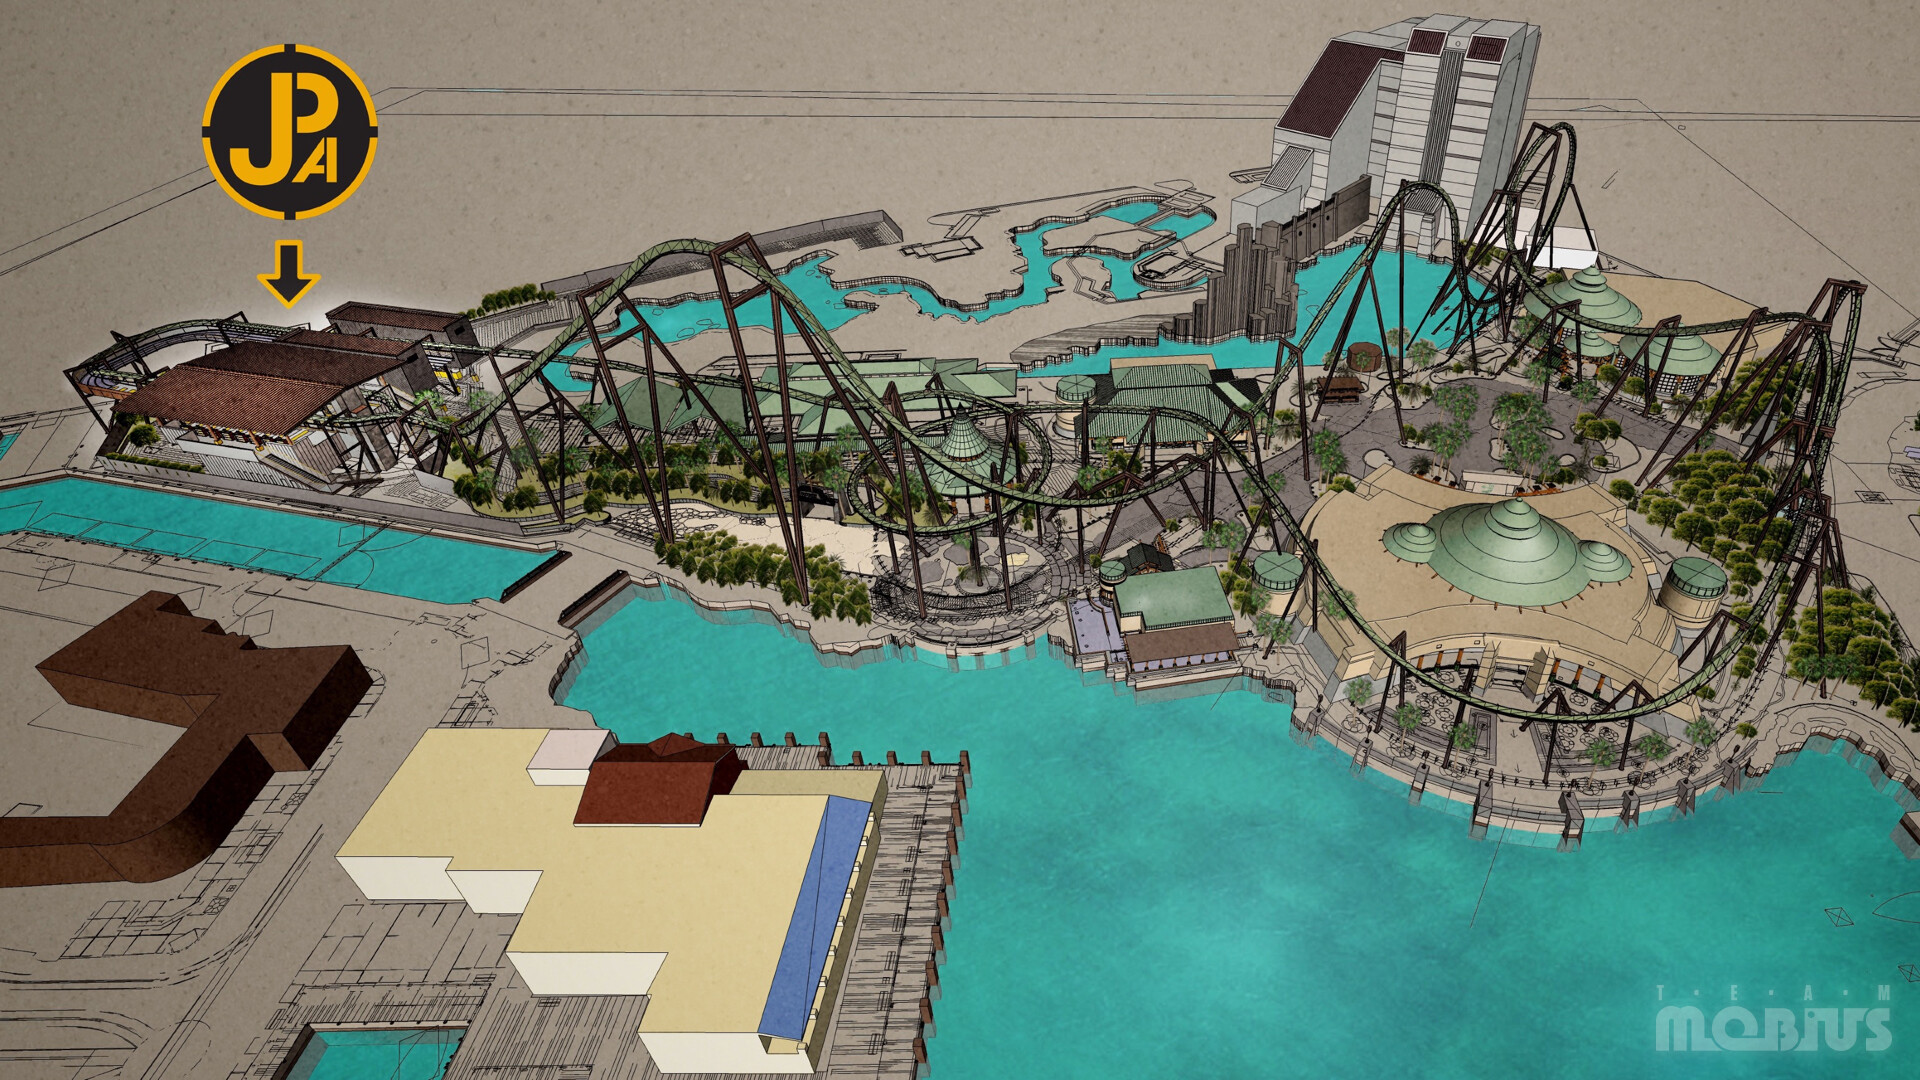 Birdseye view of attraction layout